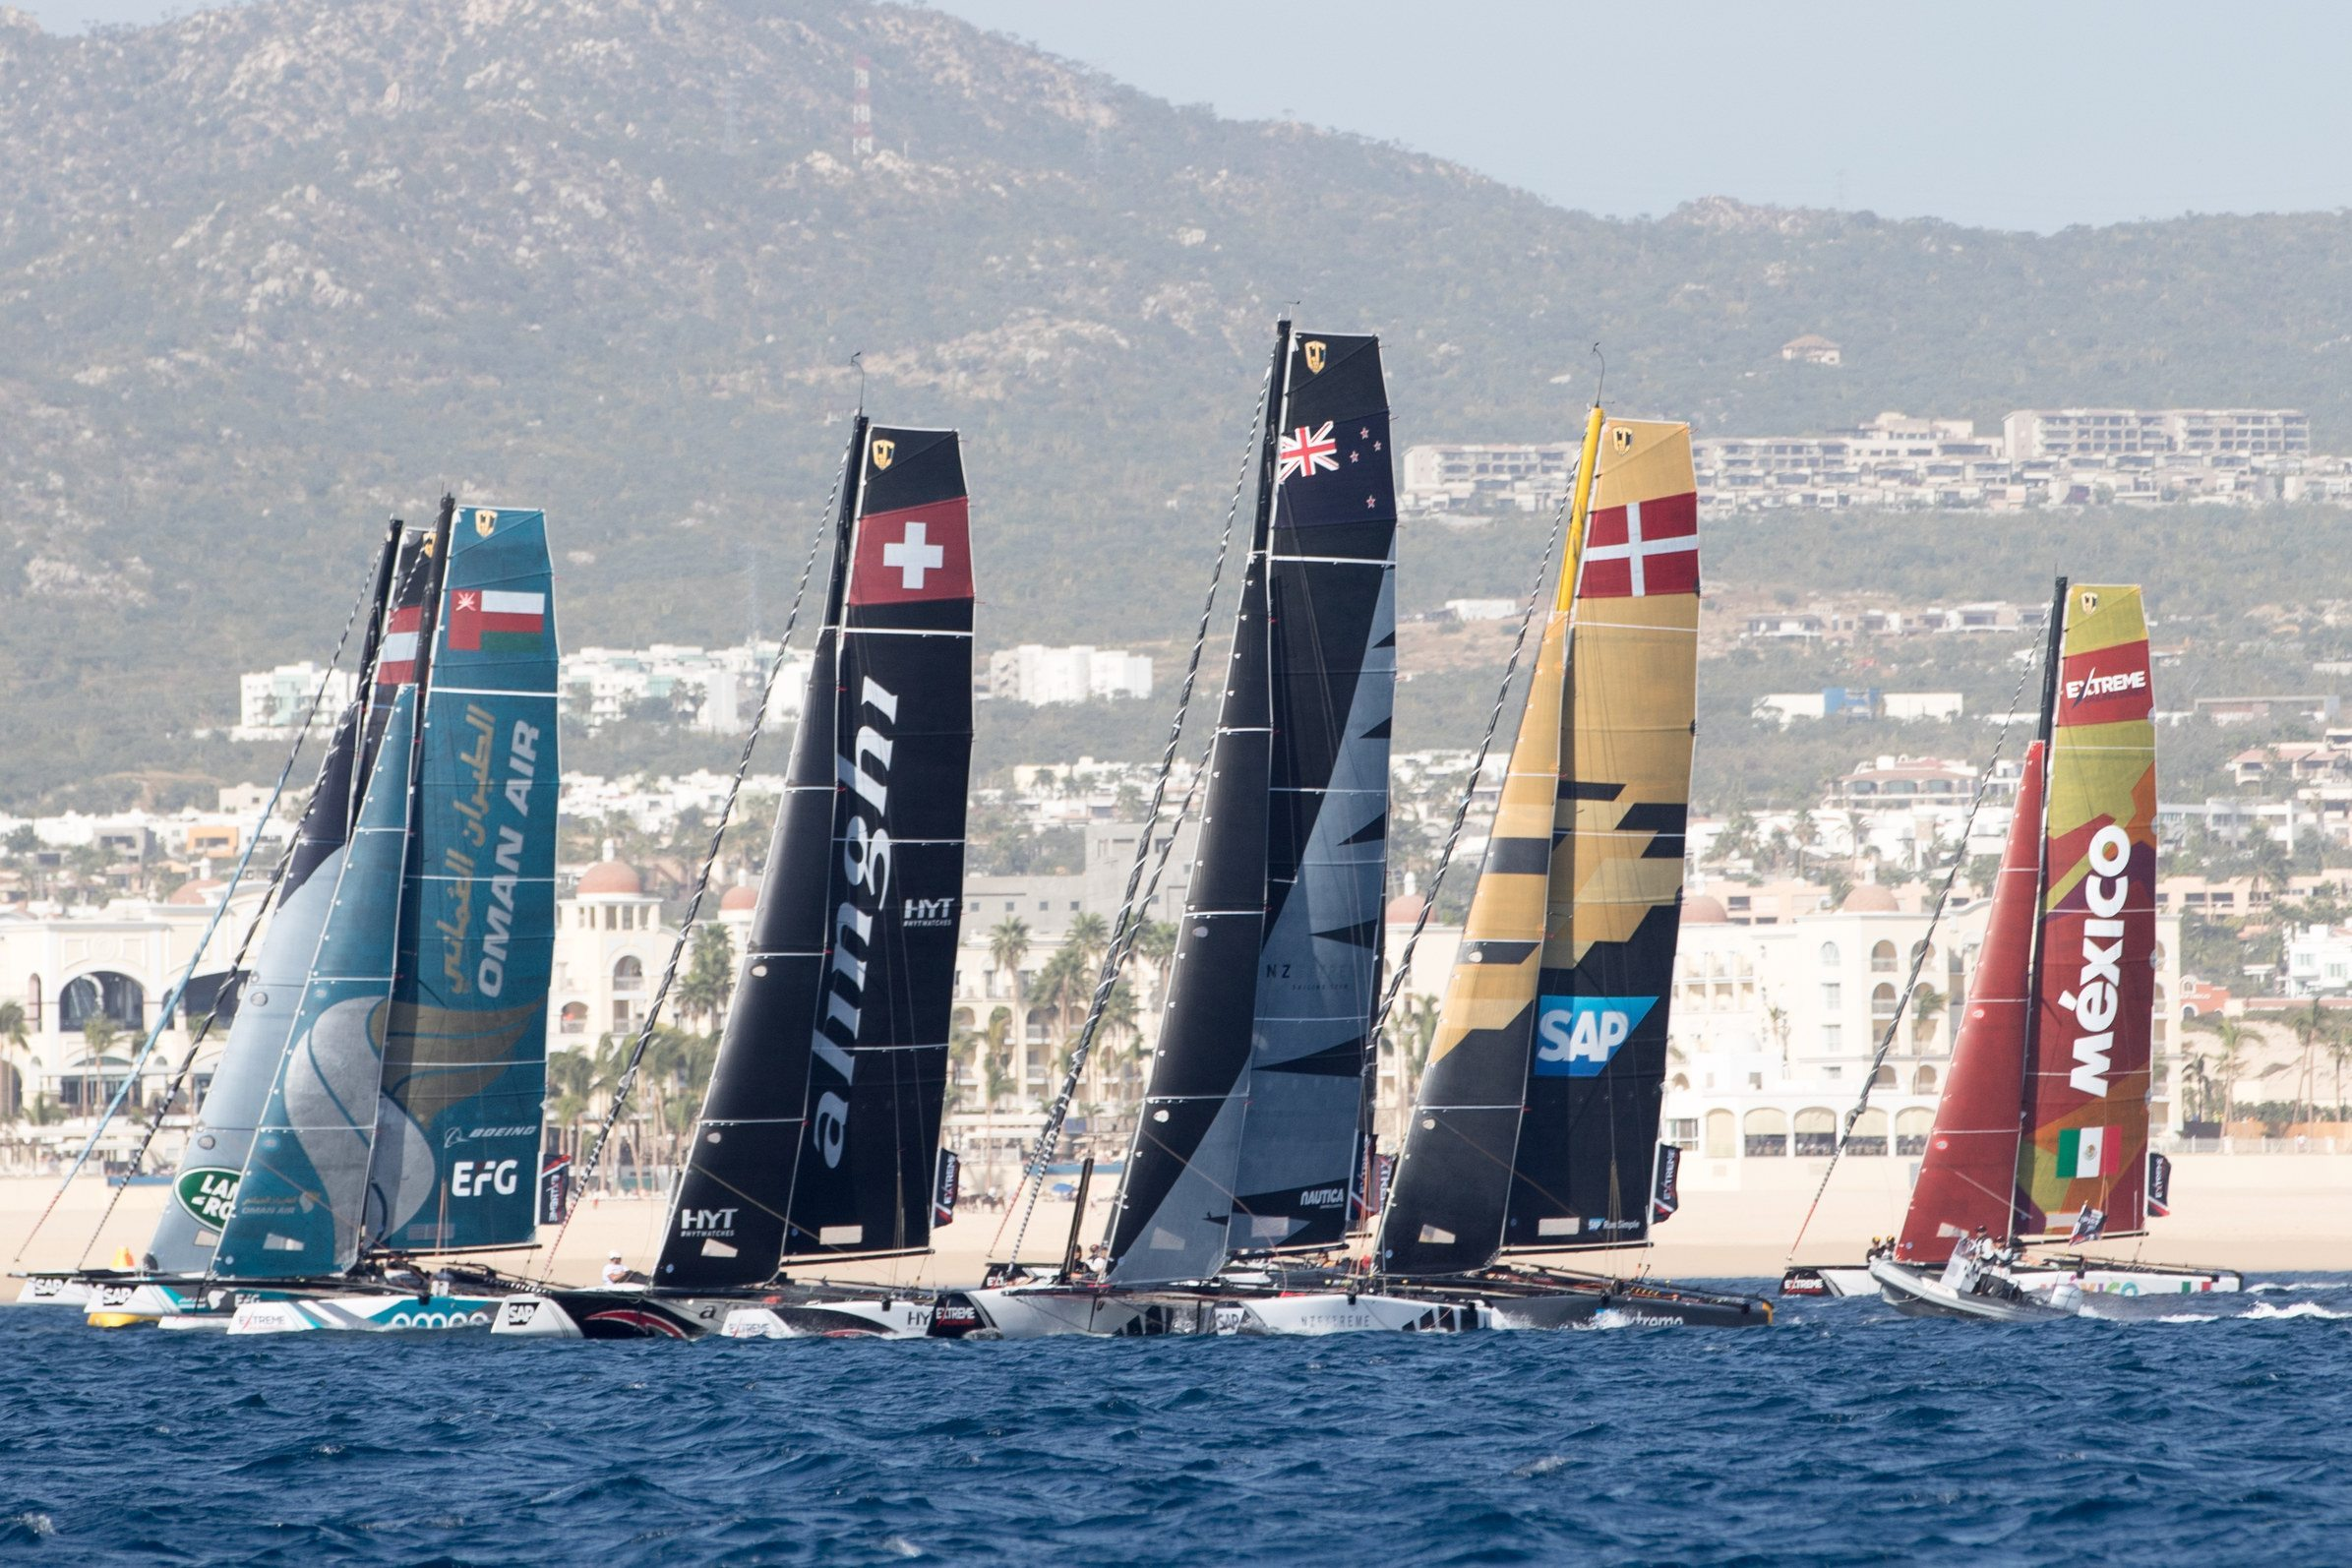 Oman Air are the team to beat at Extreme Sailing Series decider in Mexico